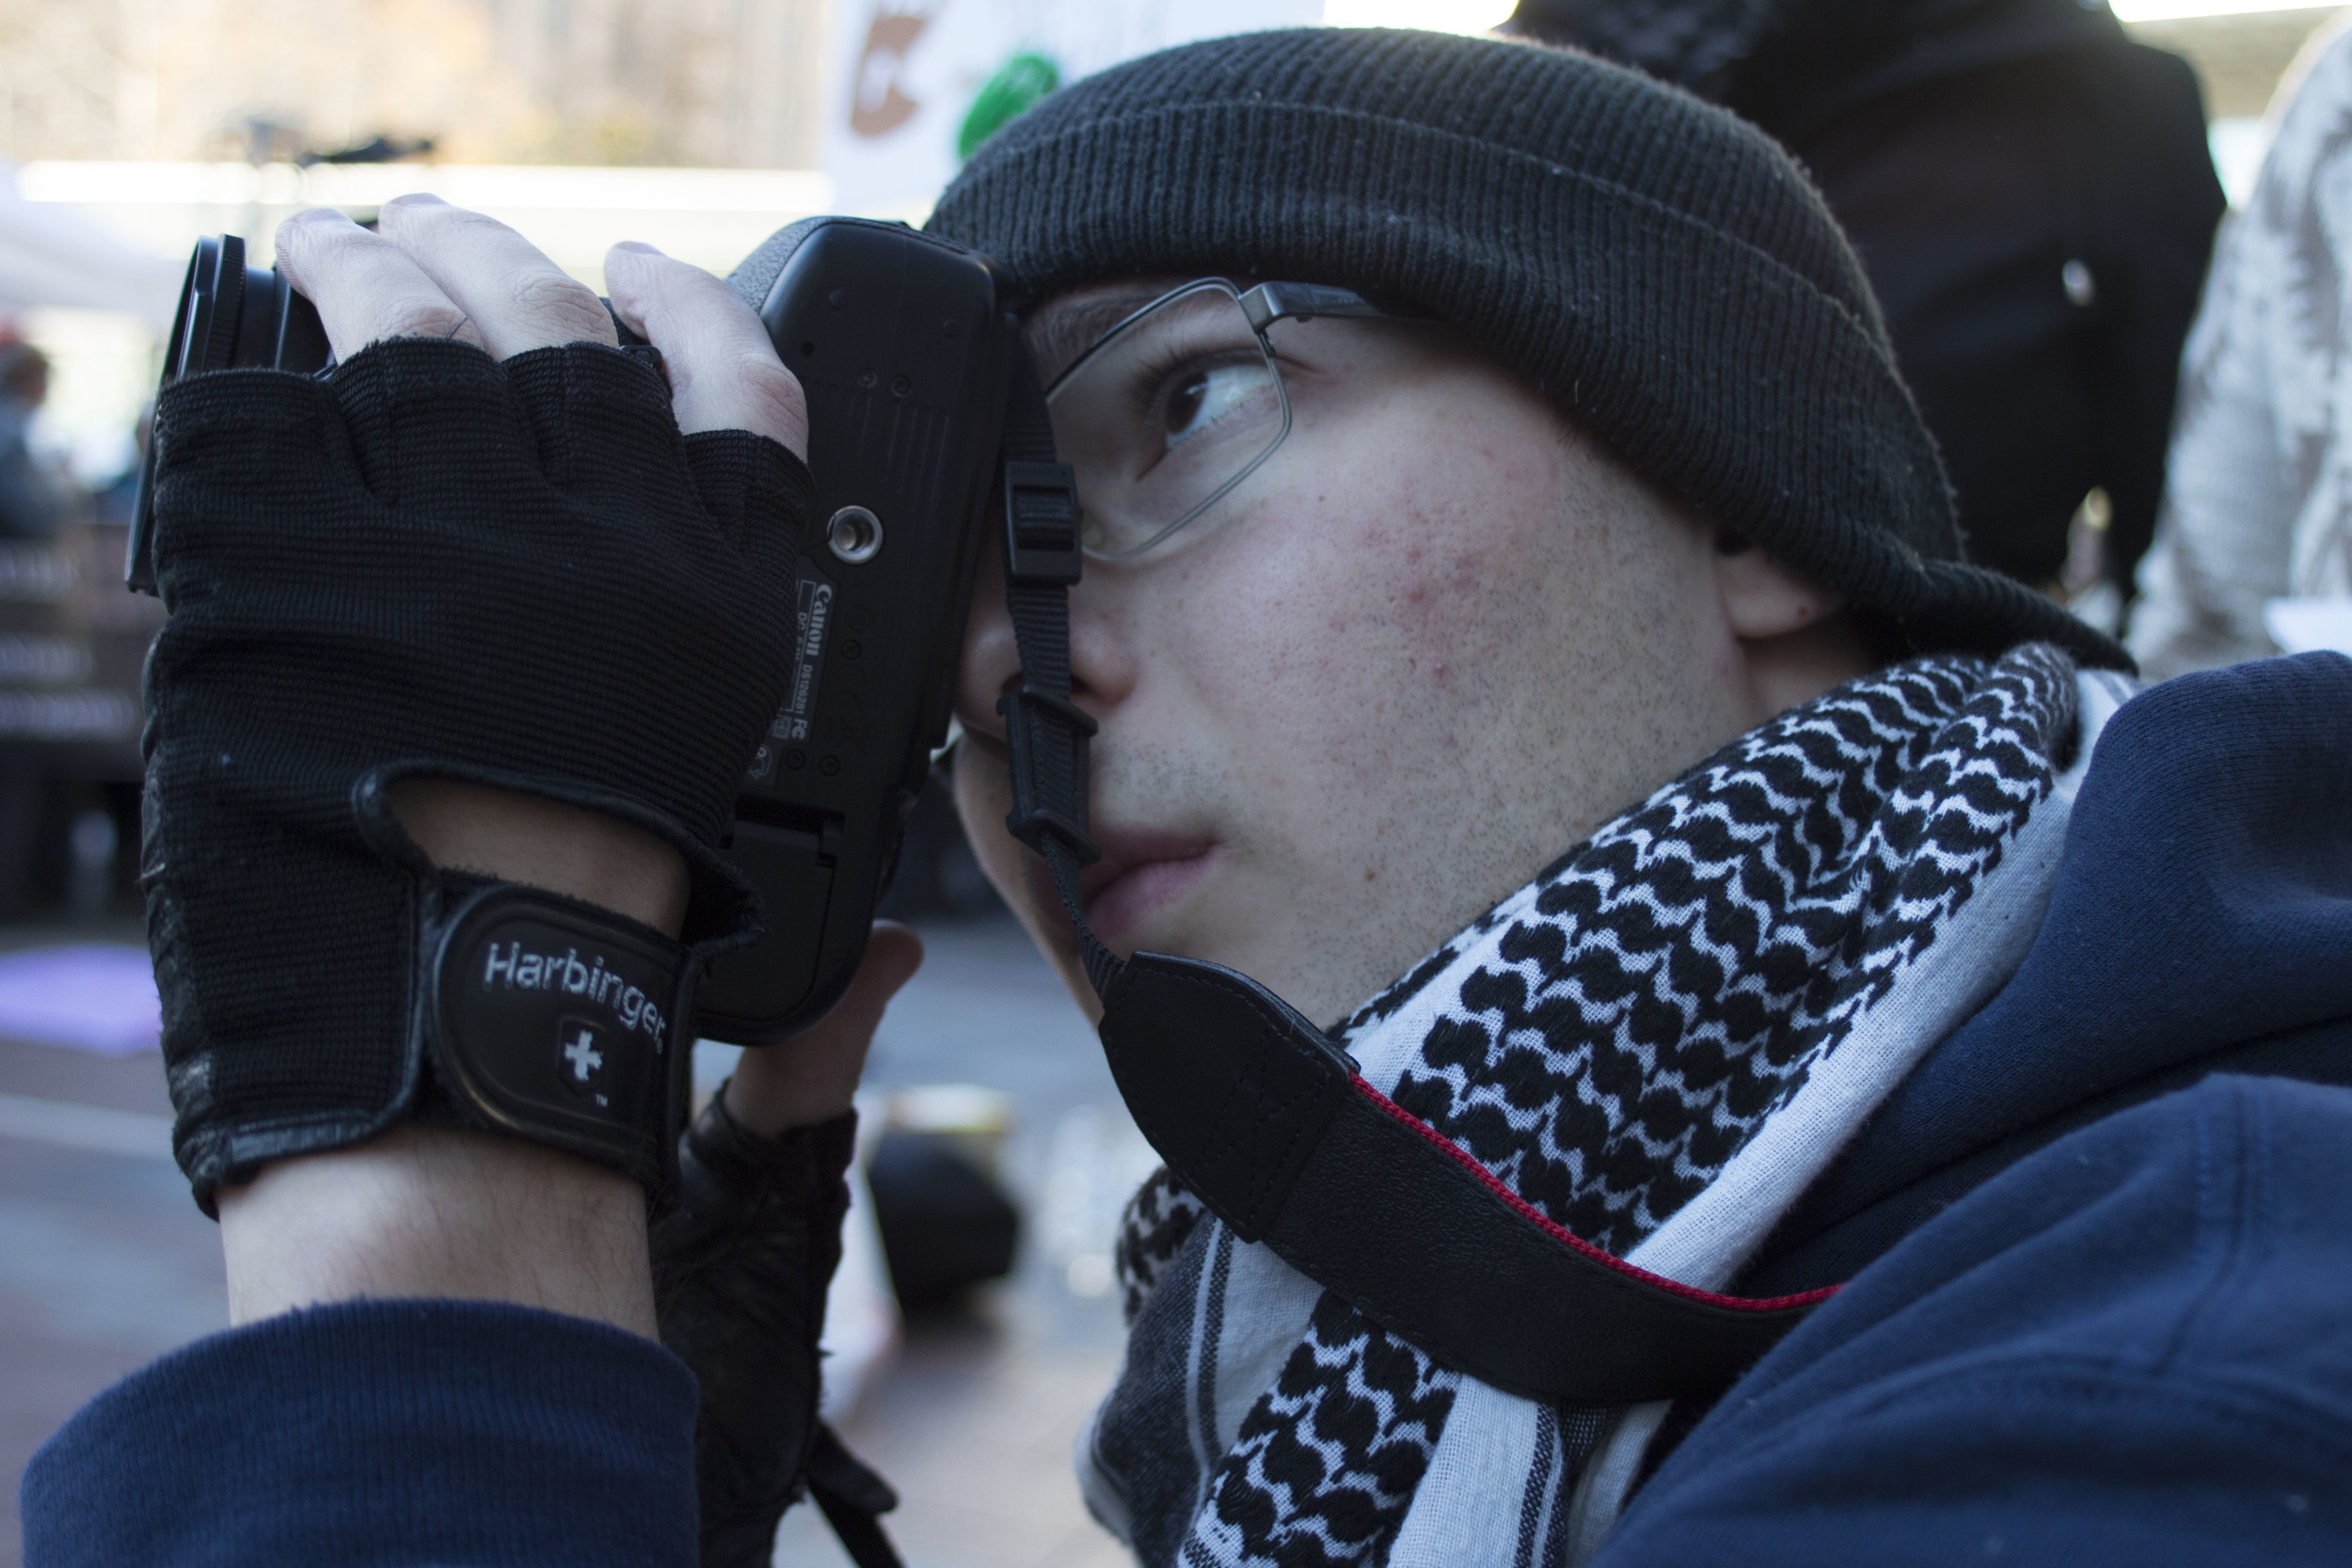 Nelson photographs the second annual Black Friday Black Lives Matter protest in Seattle on Nov. 26,2015.